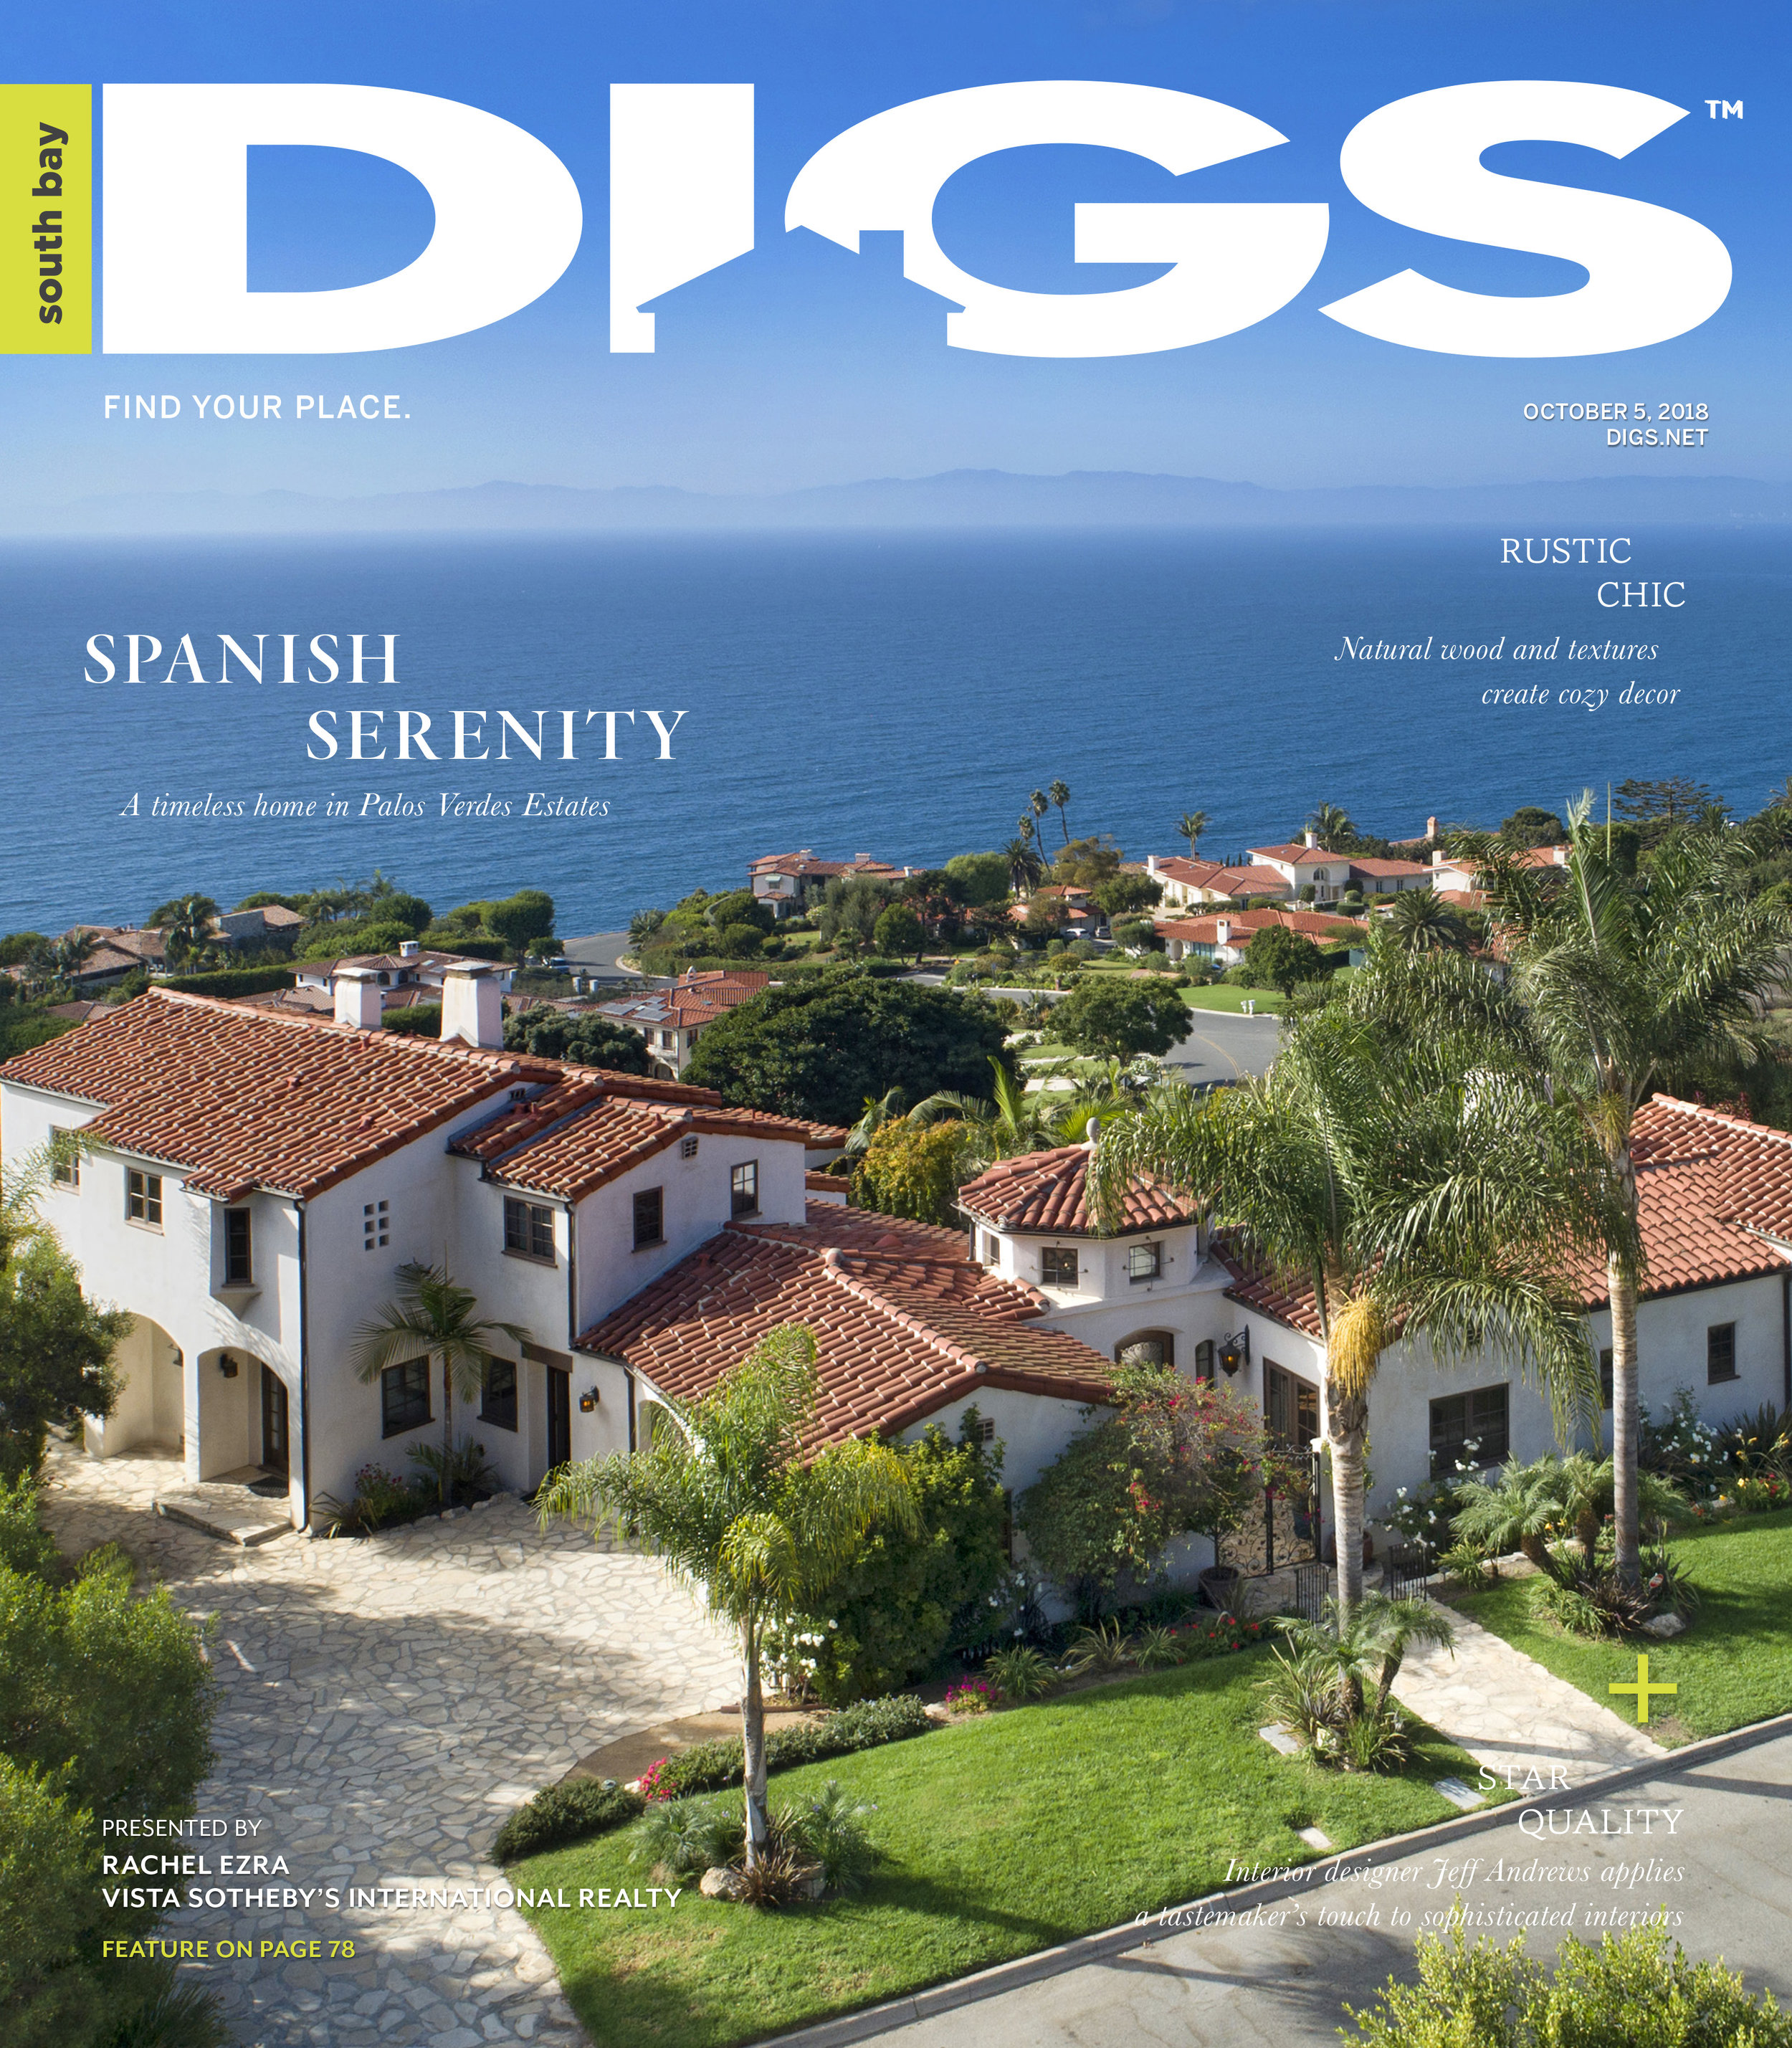 DIGS Magazine - OCTOBER 2018